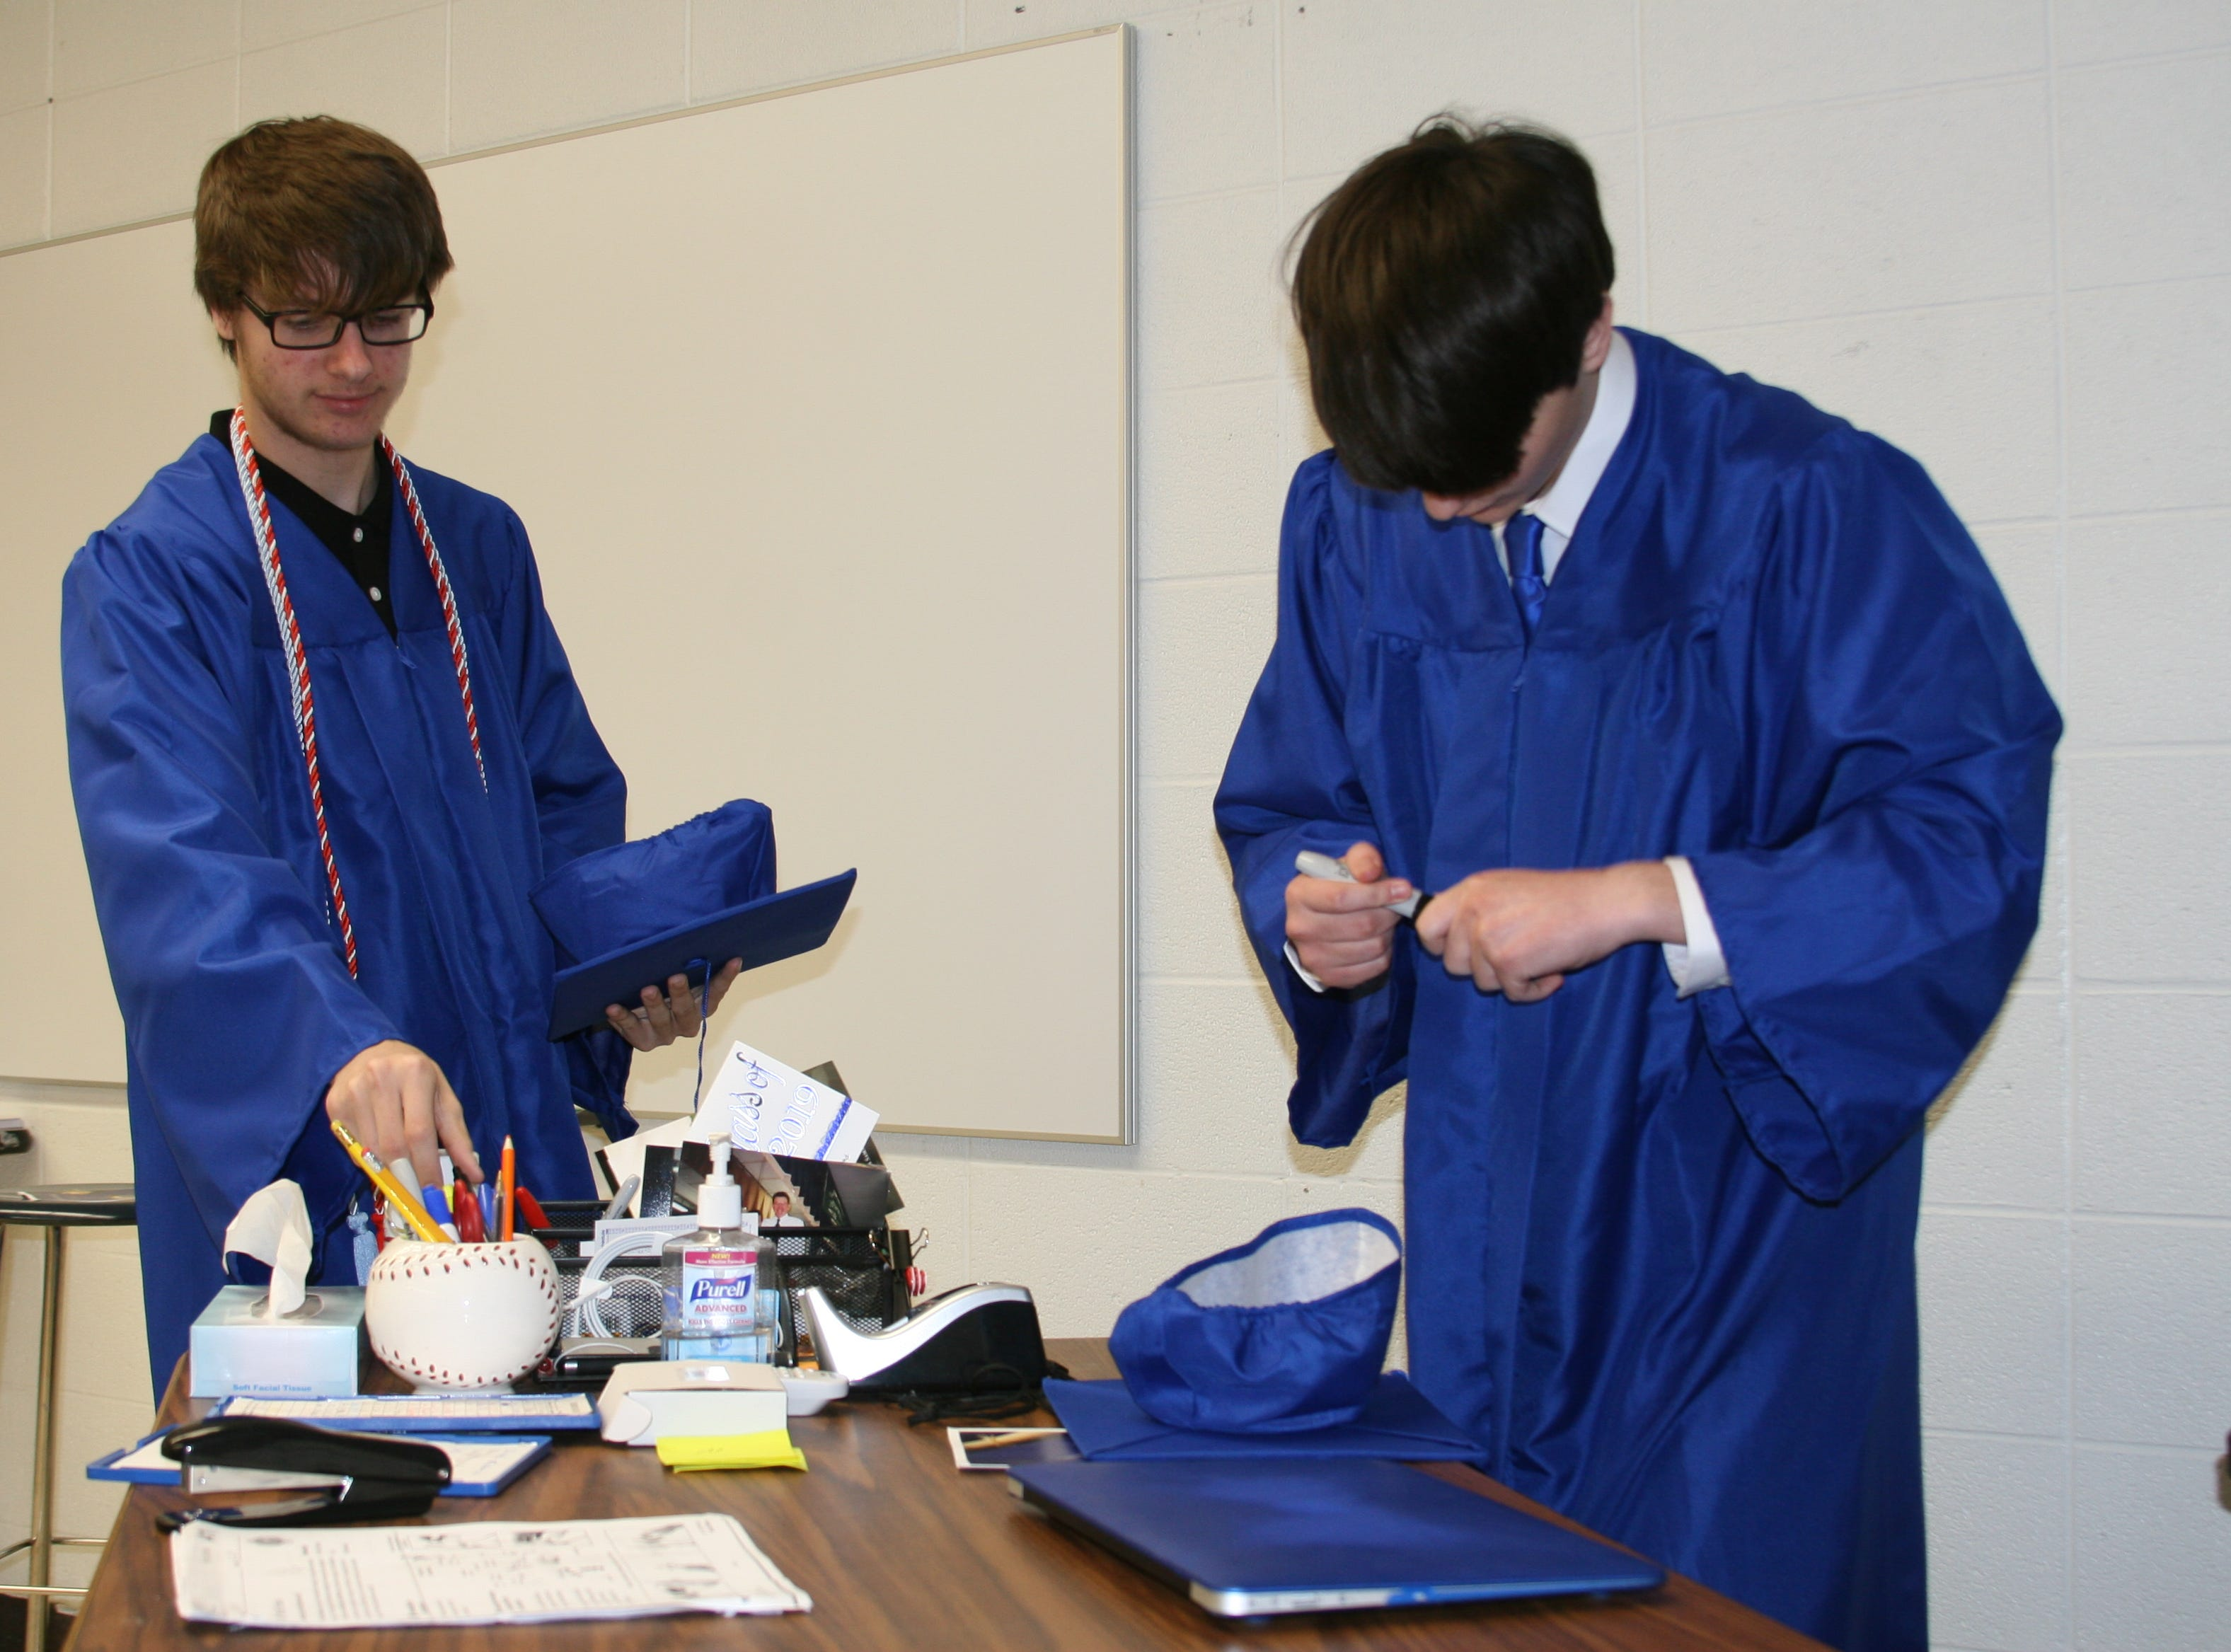 Students were advised to write their names in their mortar boards before entering the gymnasium for graduation ceremonies. It is tradition for the graduates to toss their caps after they've received their diplomas and they can often end up with different owners at the end of the festivities.